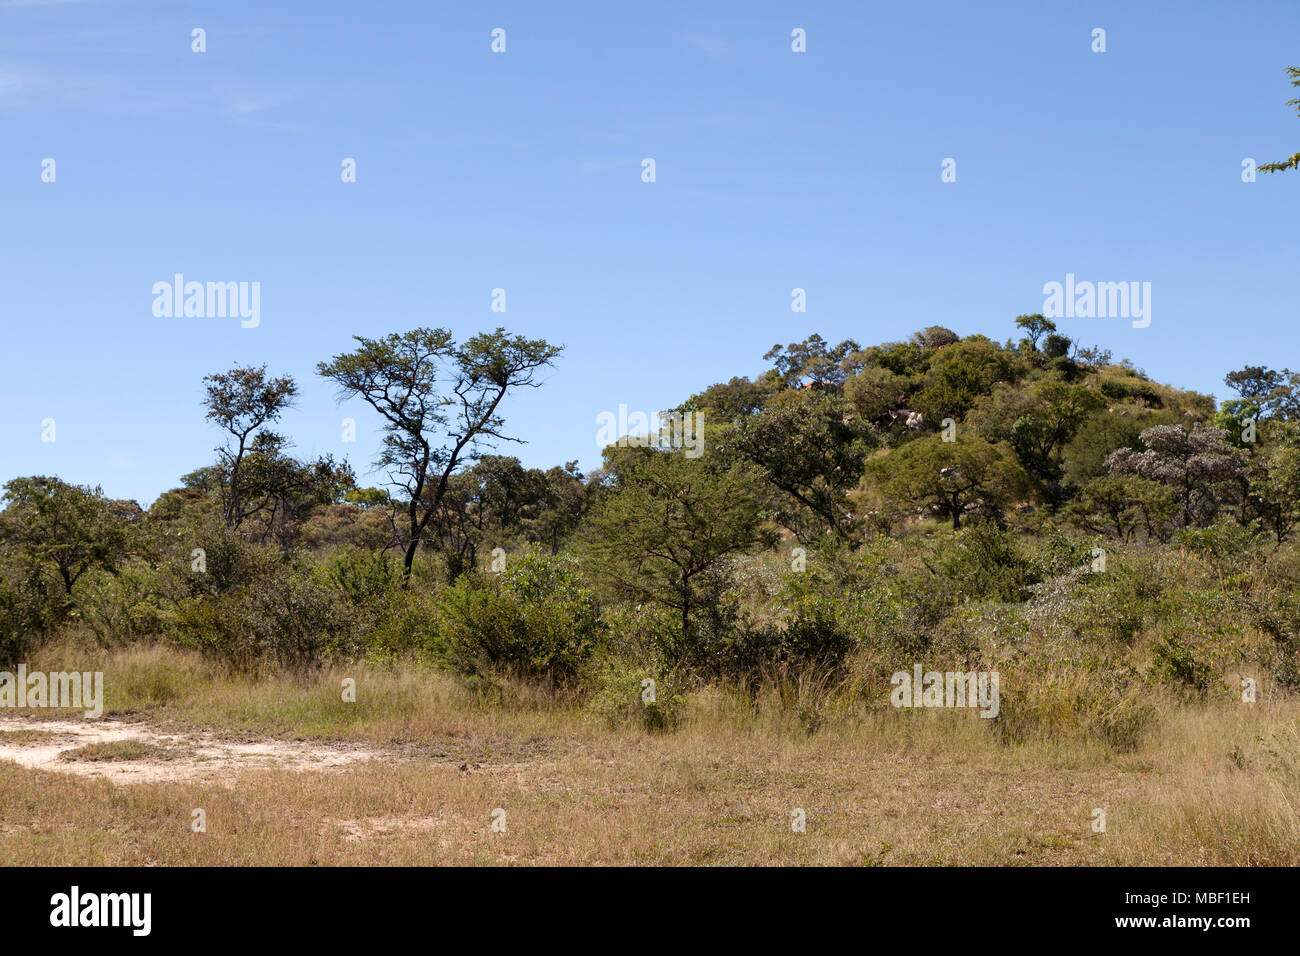 The bush at Matobo National Park in Zimbabwe. The national park is in the bushveld and provides habitat for creatures including white rhinos and zebra - Stock Image